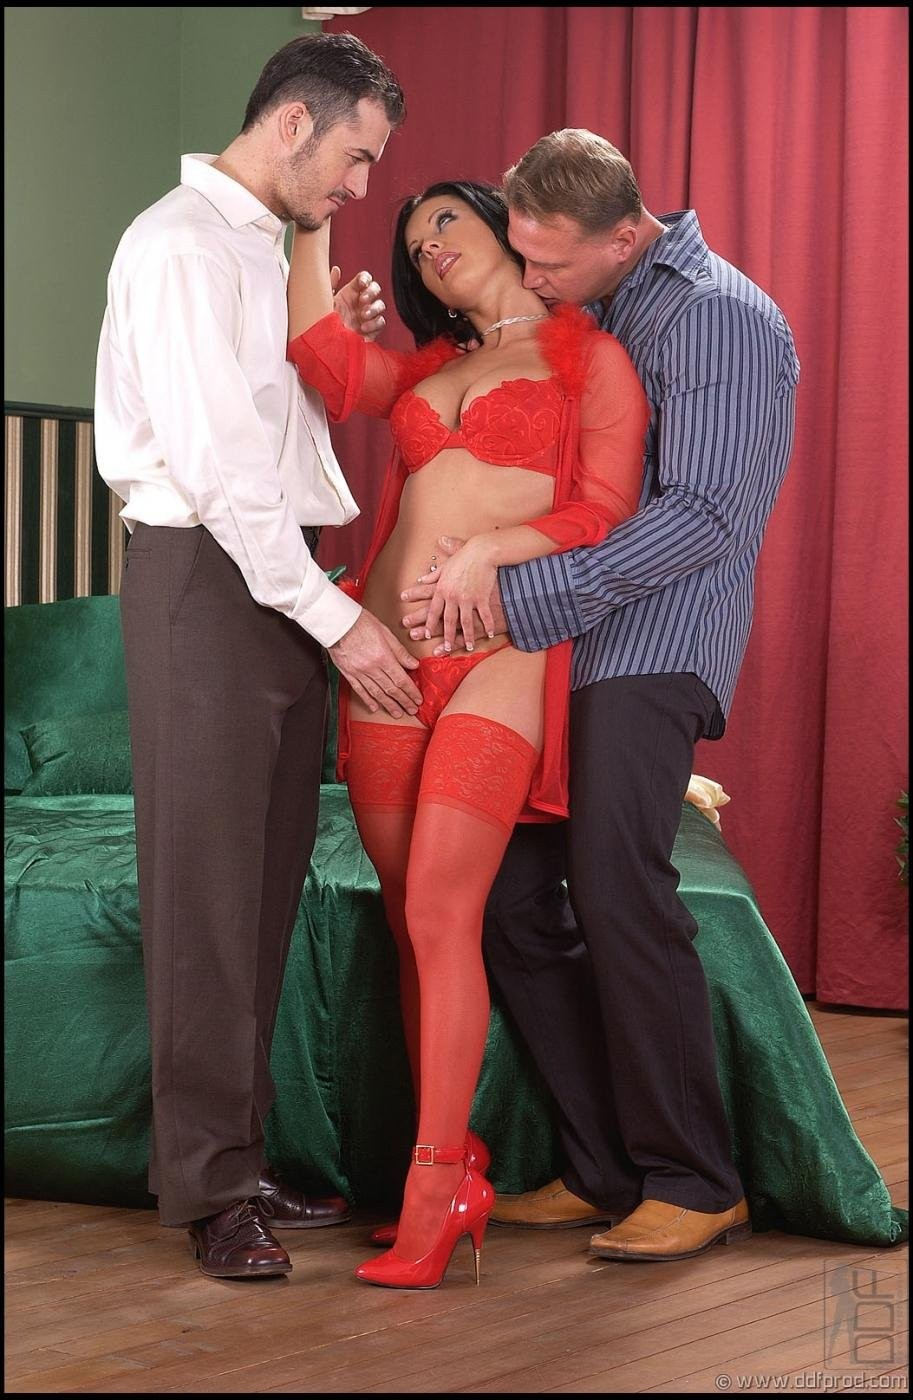 man and woman dating site – BDSM